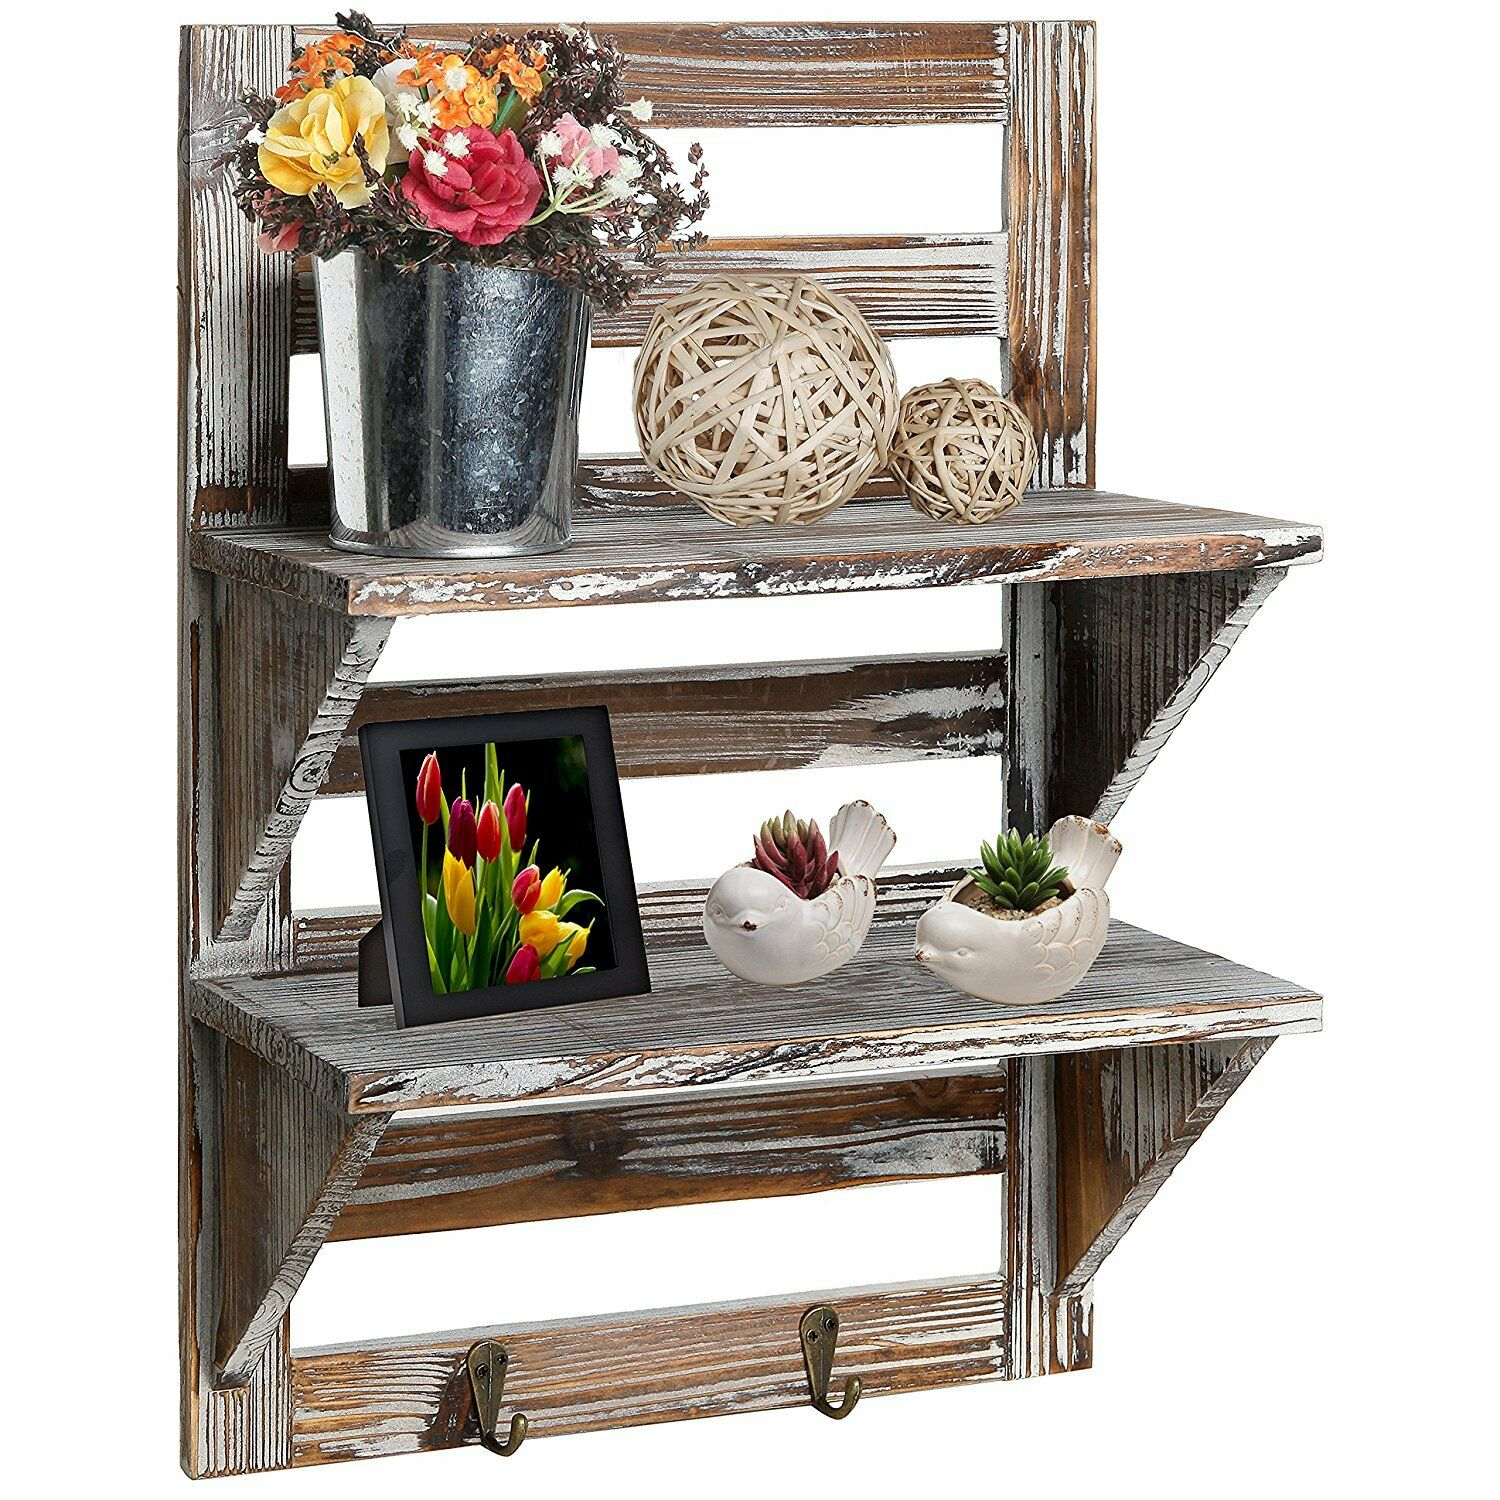 Small Wall Shelf Key Rack House Entryway Rustic Country Wood